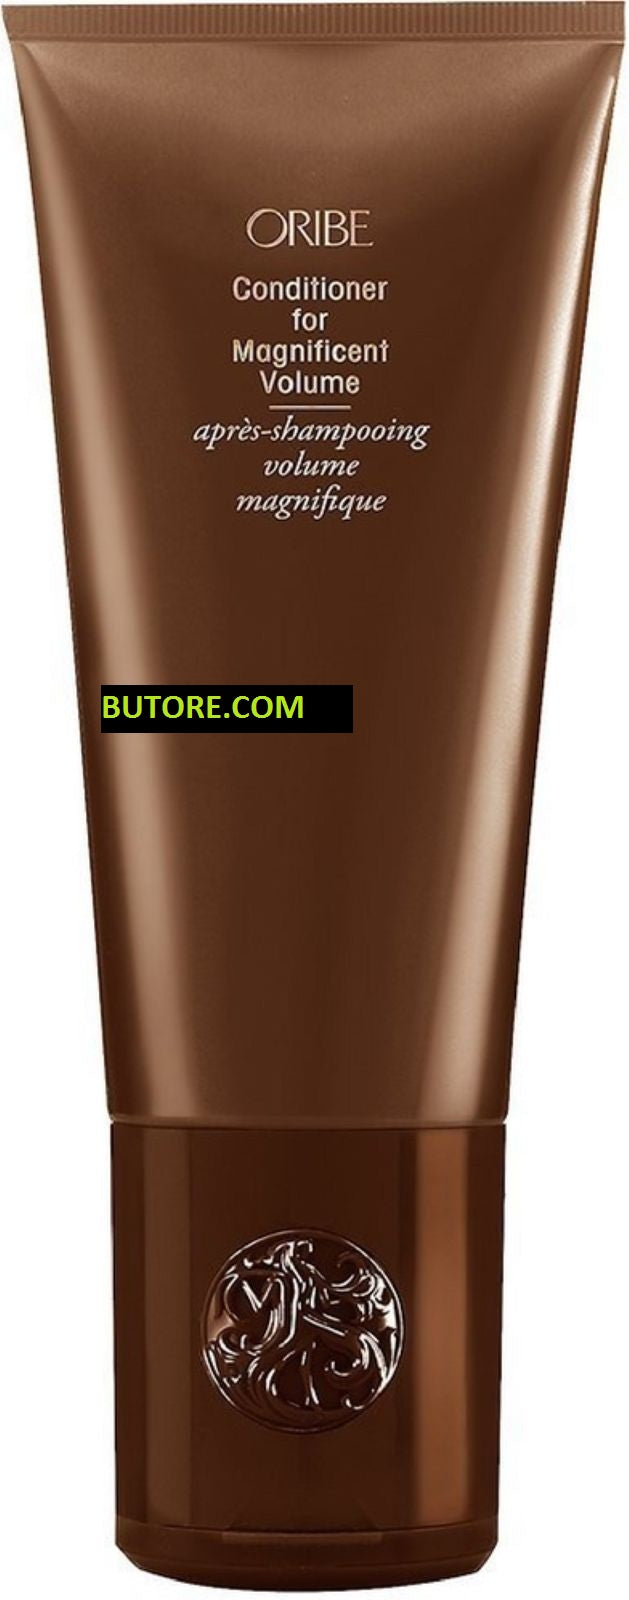 Oribe Conditioner for Magnificent Volume 6.8 oz (Pack of 5)